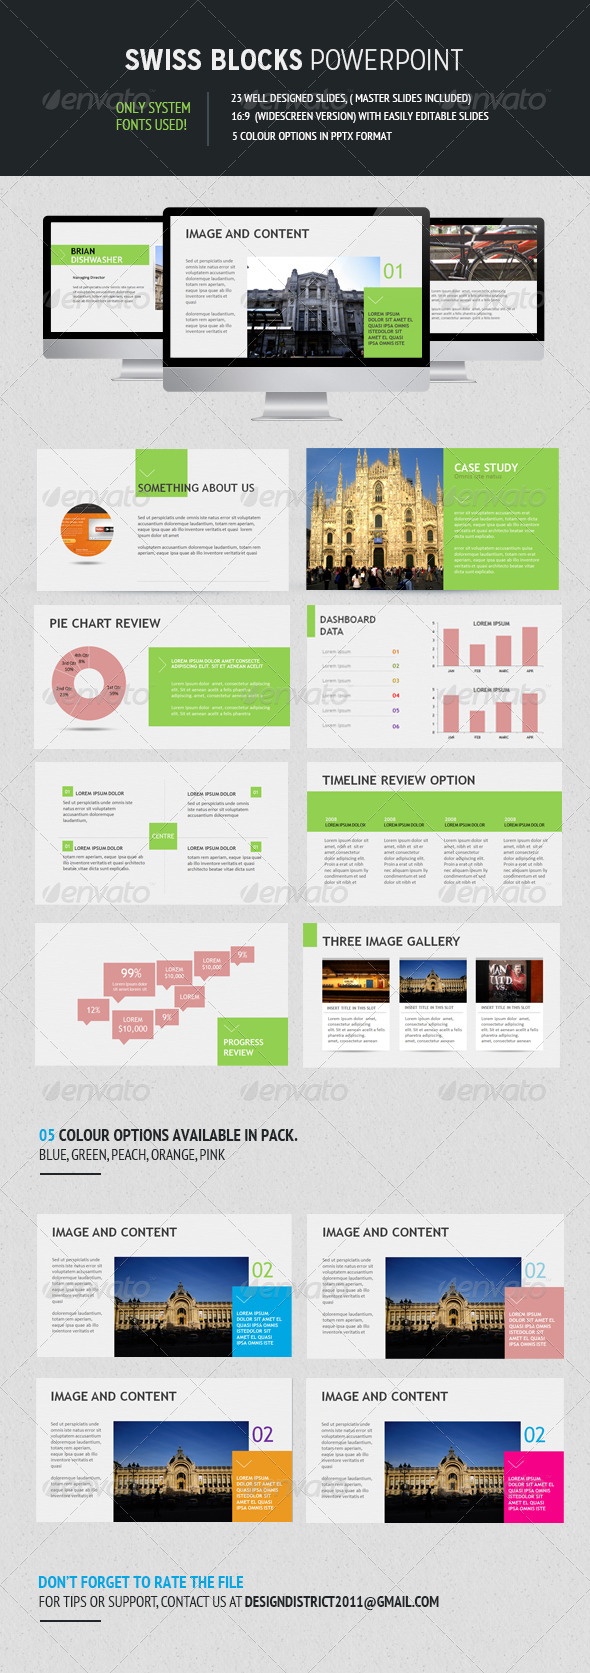 Swiss Block Powerpoint - Presentation Templates